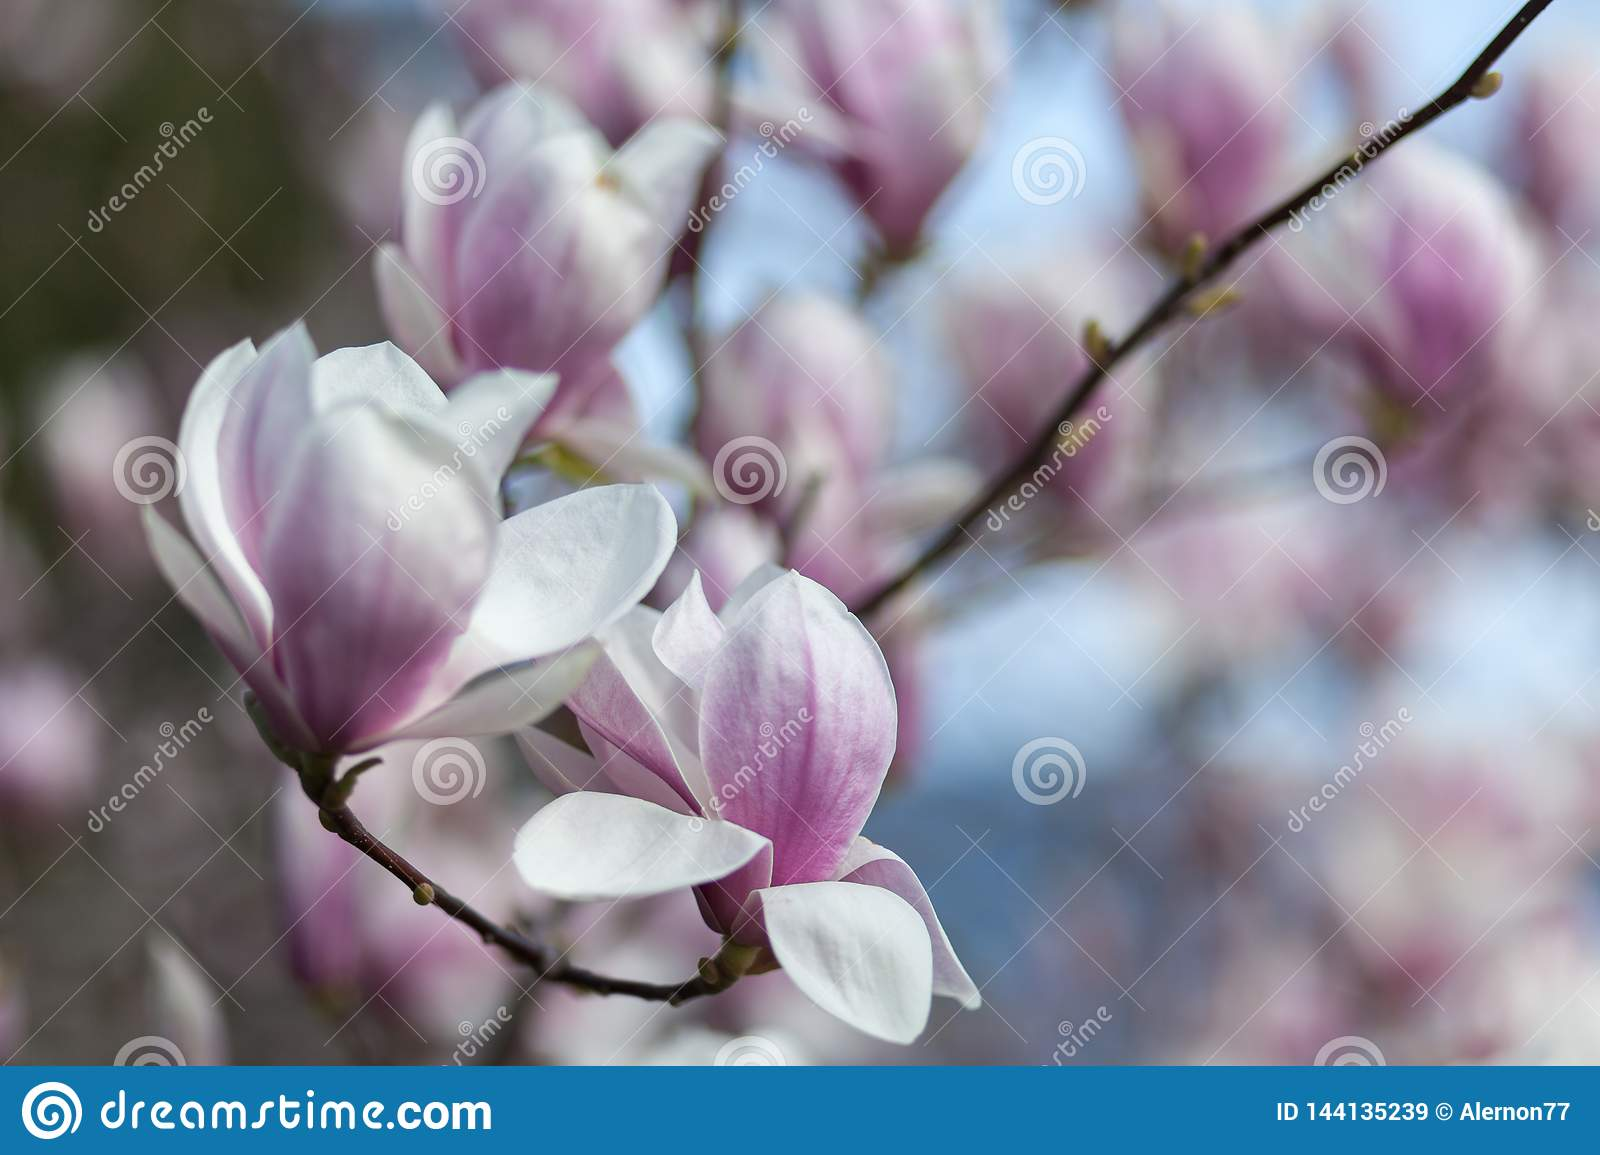 Natural spring flower, many blooming beauty flowers